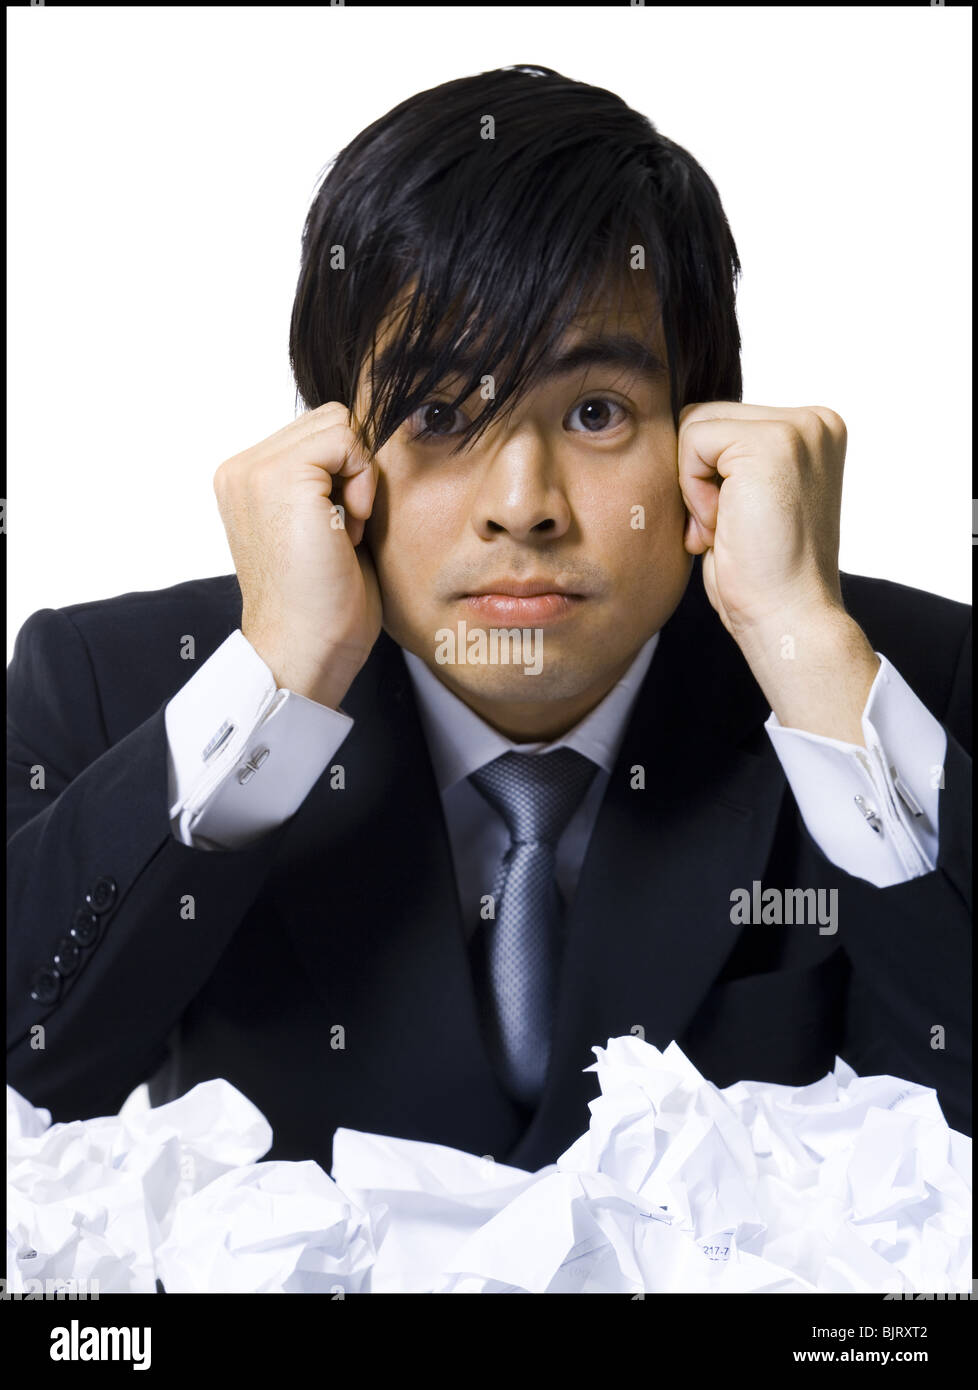 Frustrated businessman surrounded by crumpled papers Stock Photo